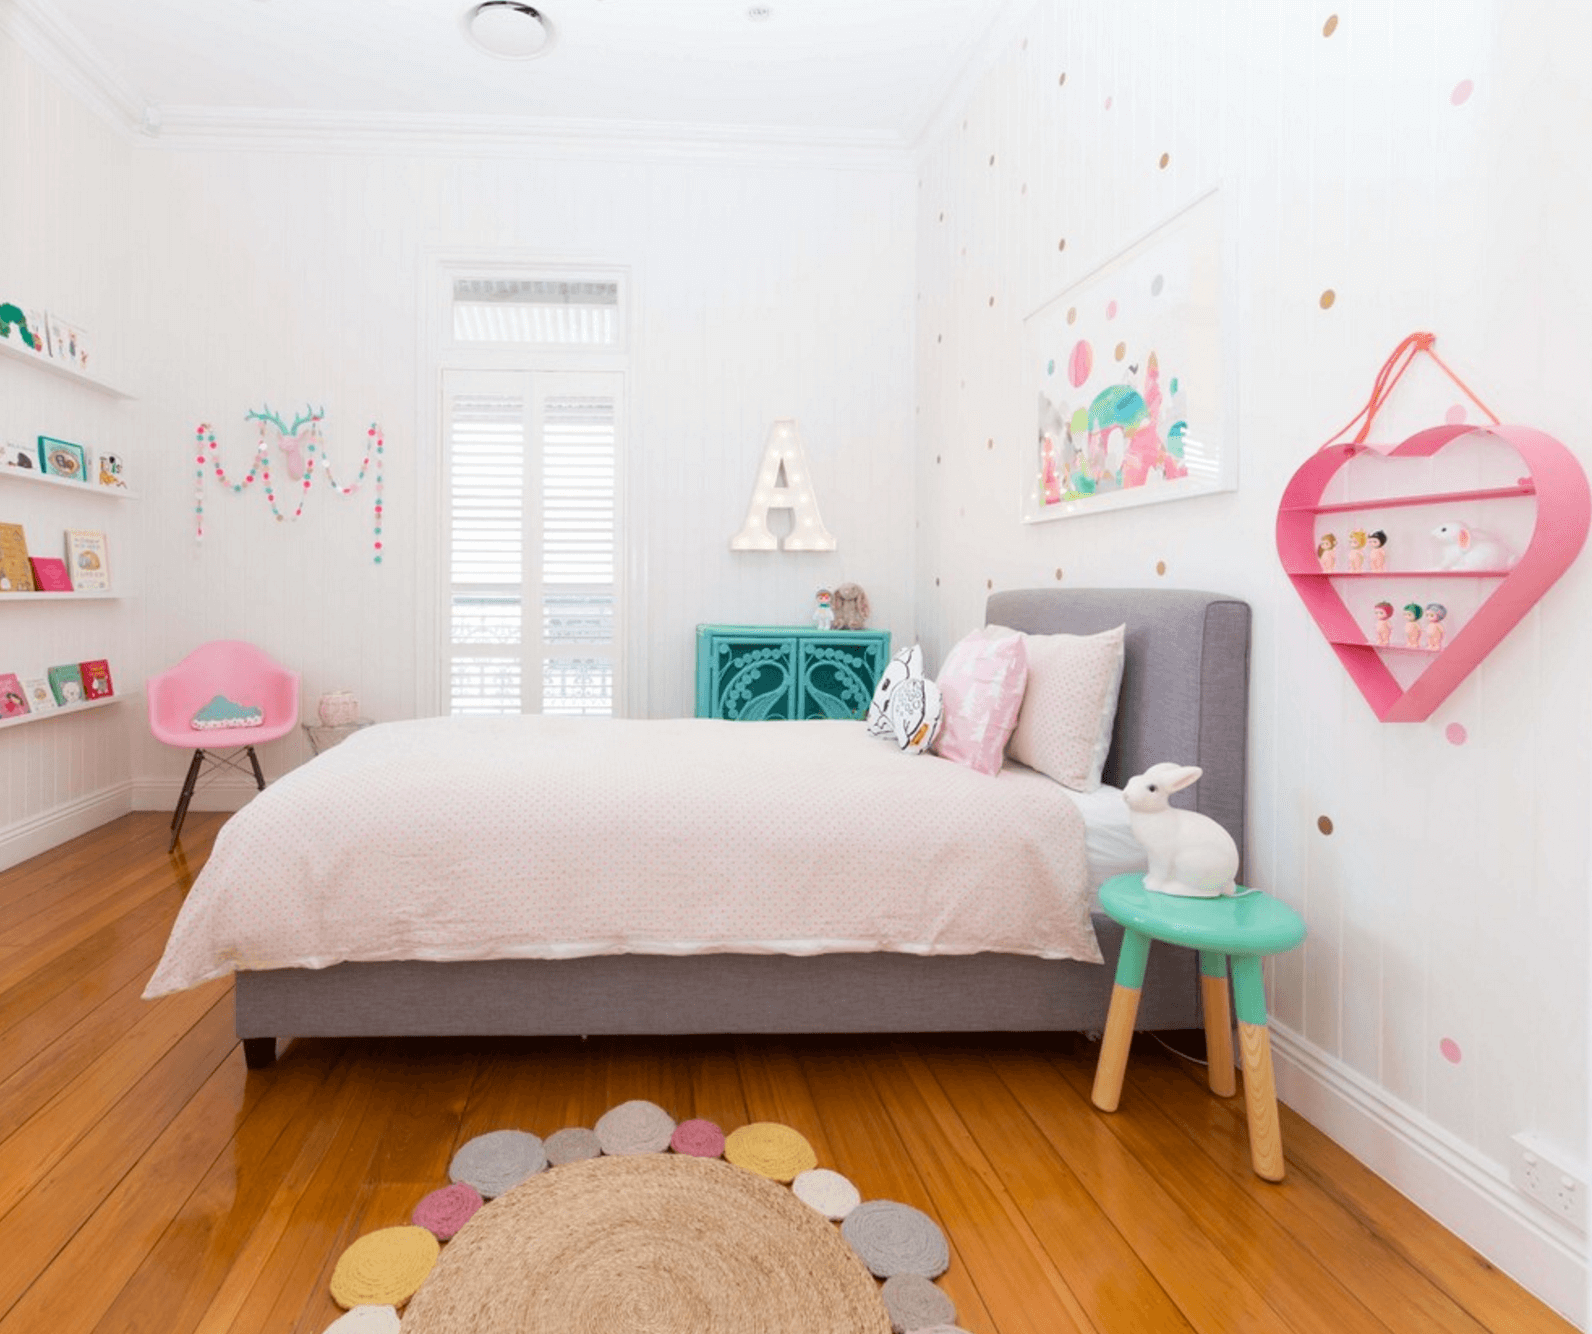 28 Ideas For Adding Color To A Kids Room Girls Bedroom Modern